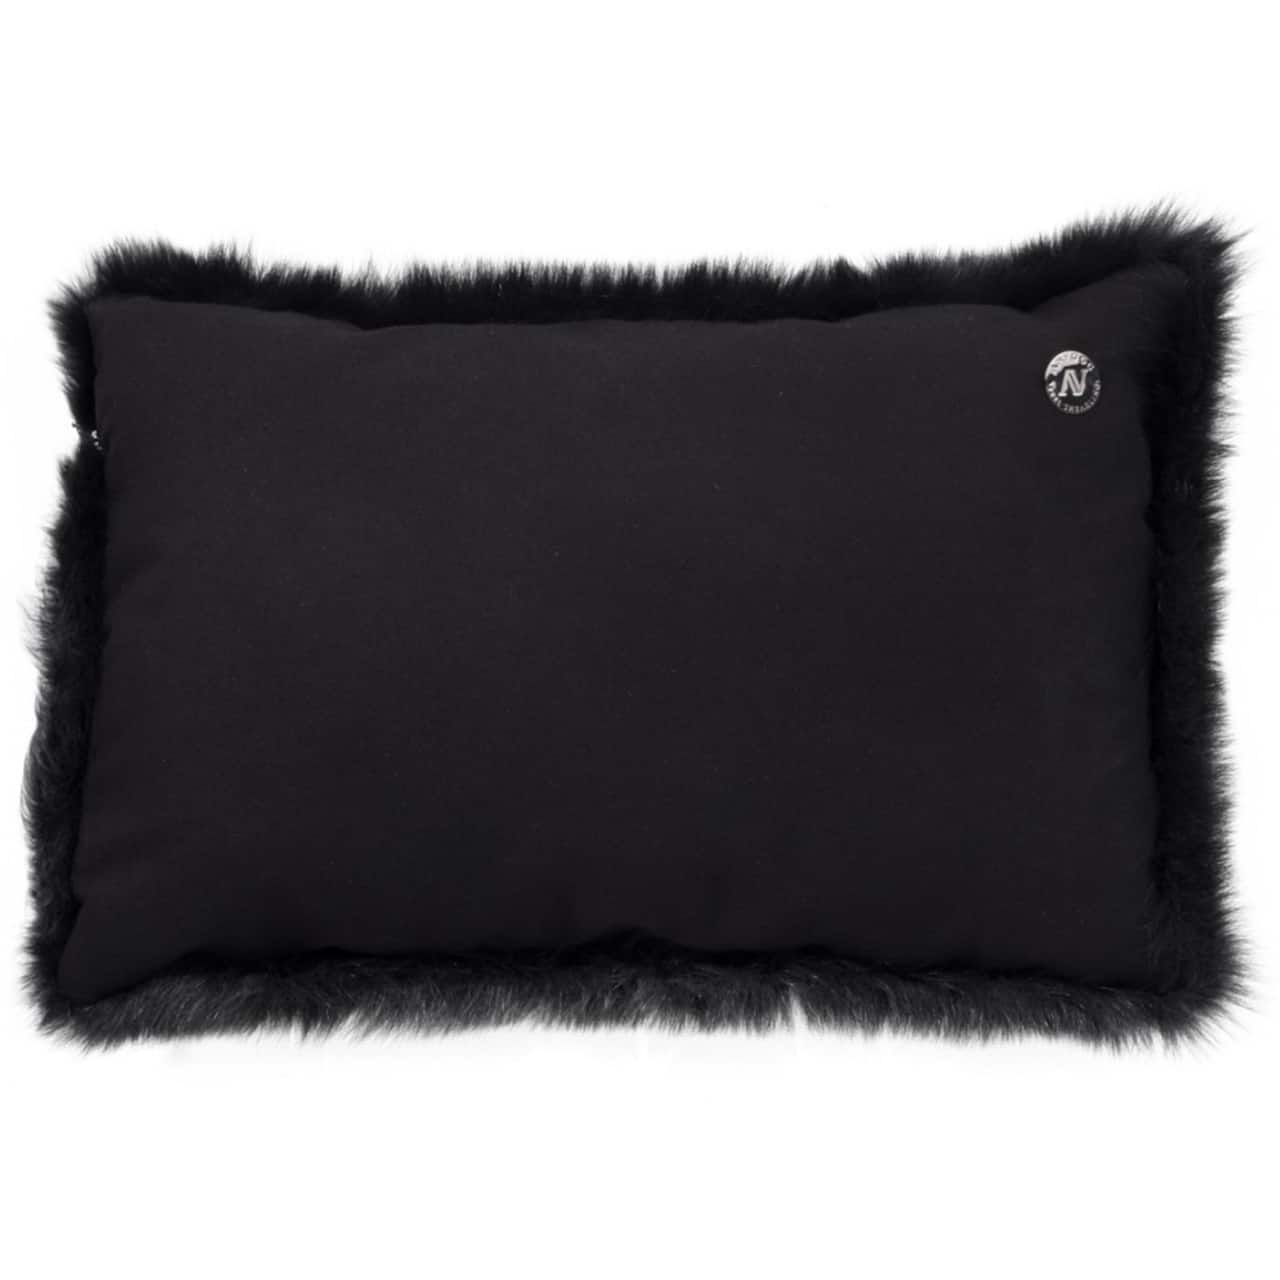 NEW-Shearling Pillow- Black- 35x55cm (SPBLABL3555) arka - ANVOGG FEEL SHEARLING | ANVOGG